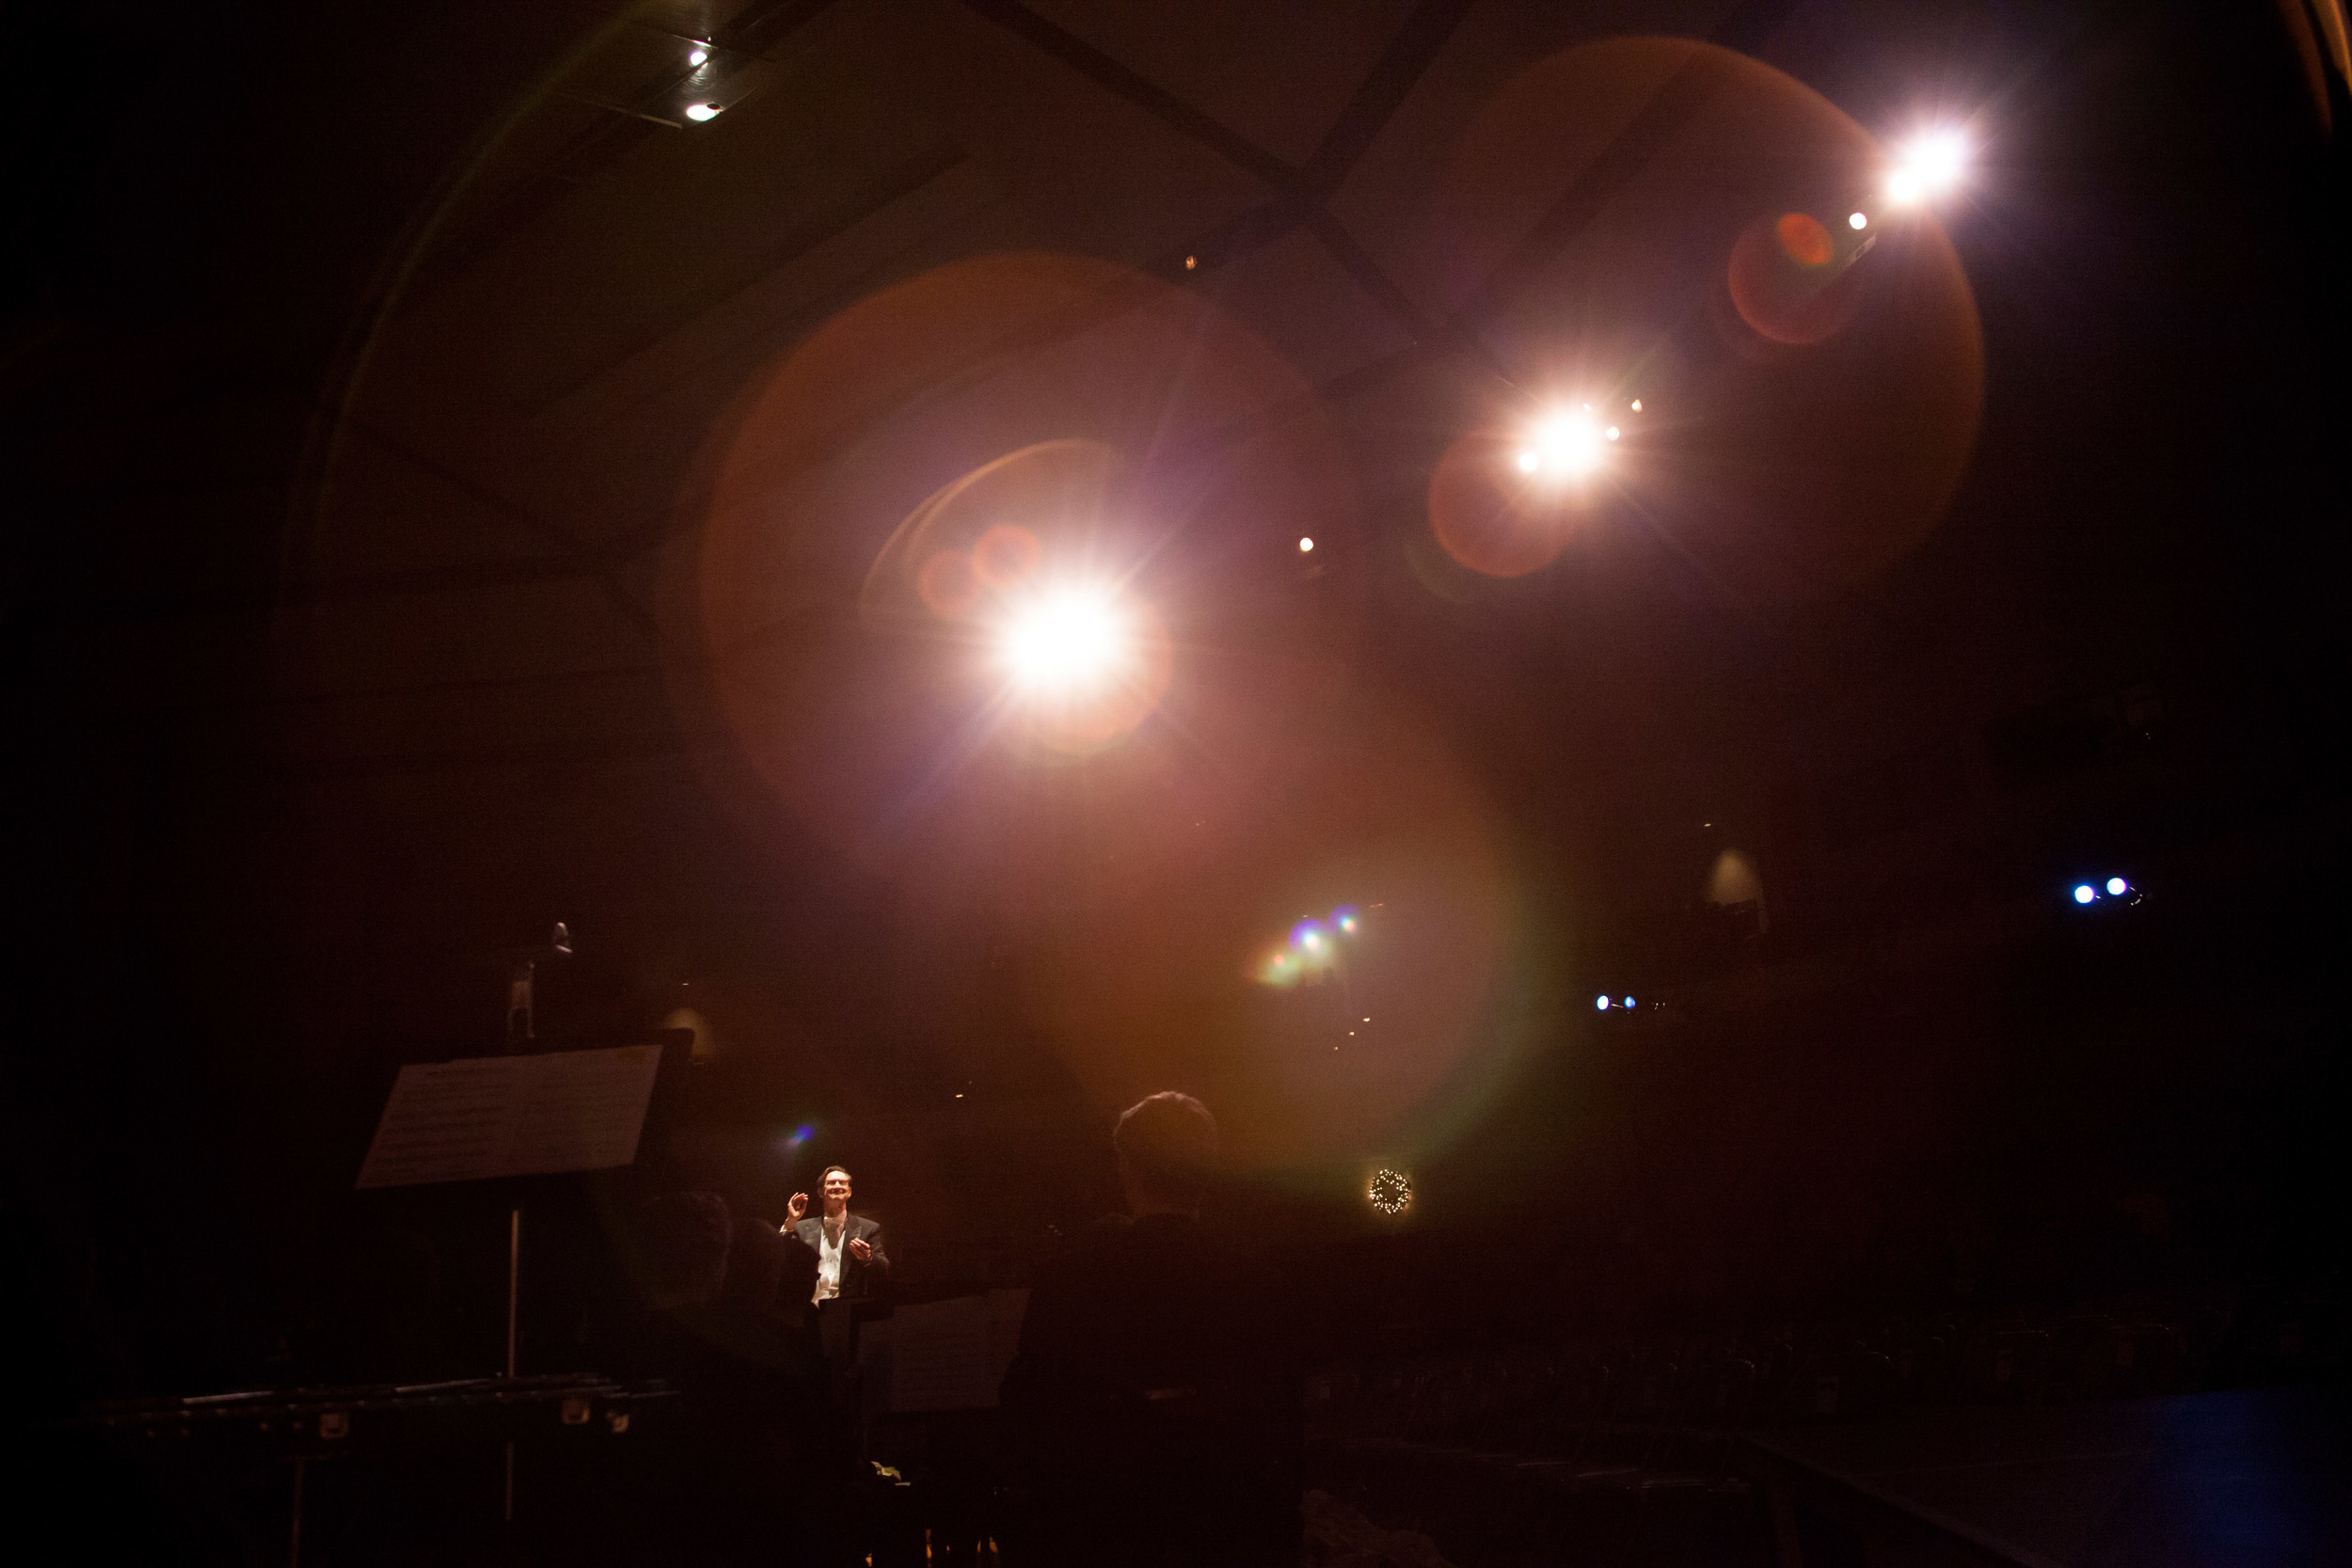 Dr. Alan Hightower conducts in the the stage lights. J.J Abrams, eat your heart out.